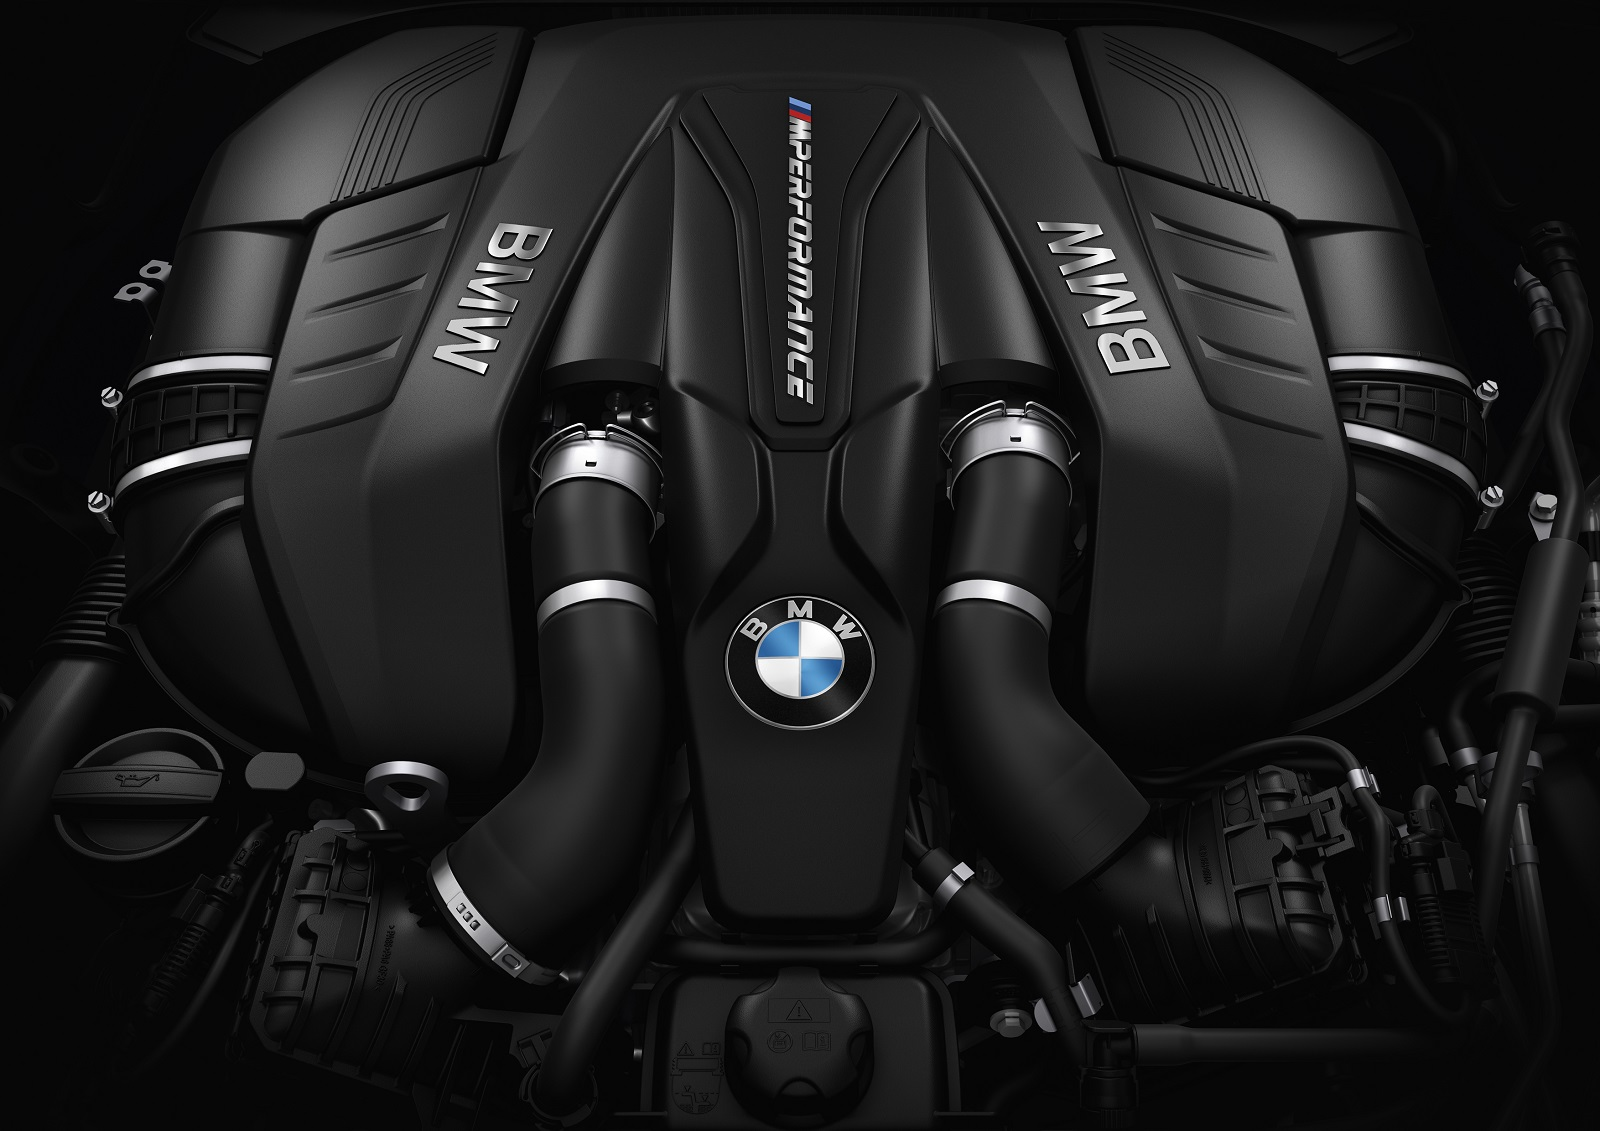 bmw_n63tu2_engine